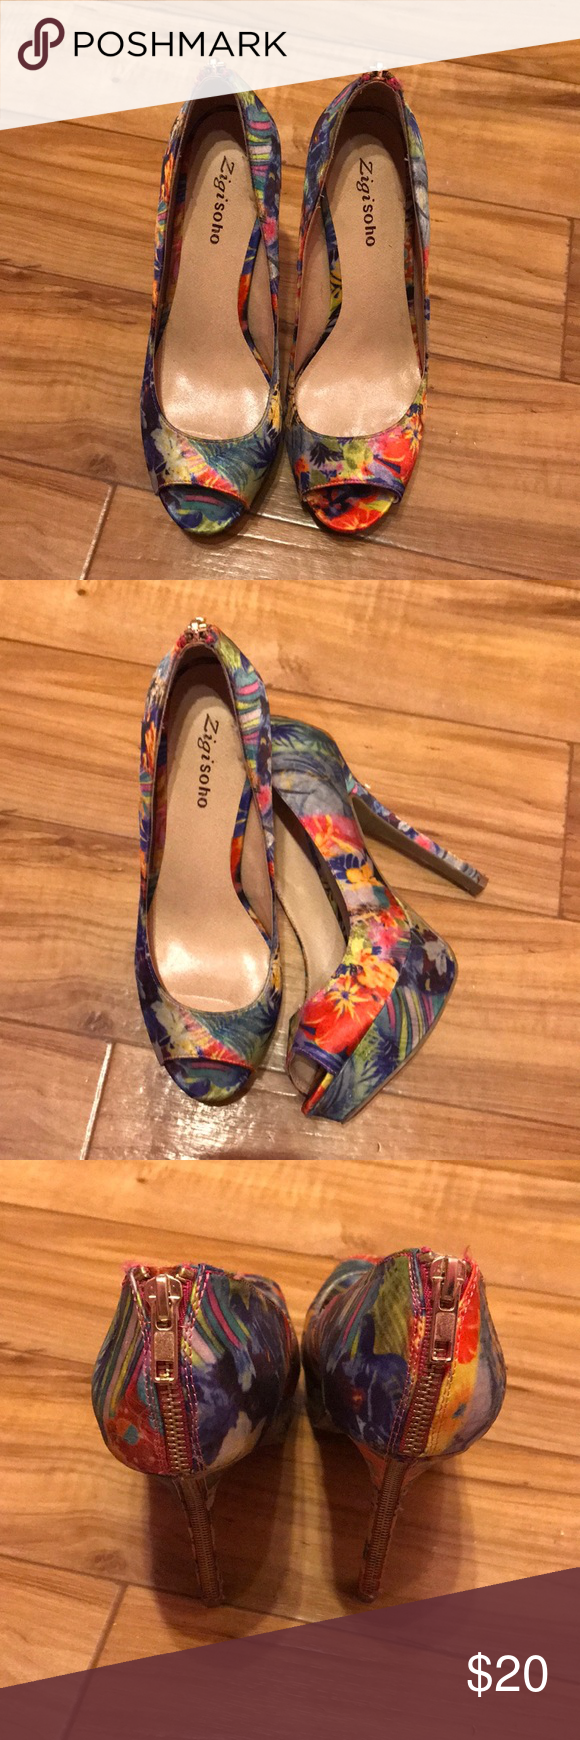 Floral heels Floral heels , worn once. No original tags but in perfect condition no scratches or scuffs! Zigi Soho Shoes Heels